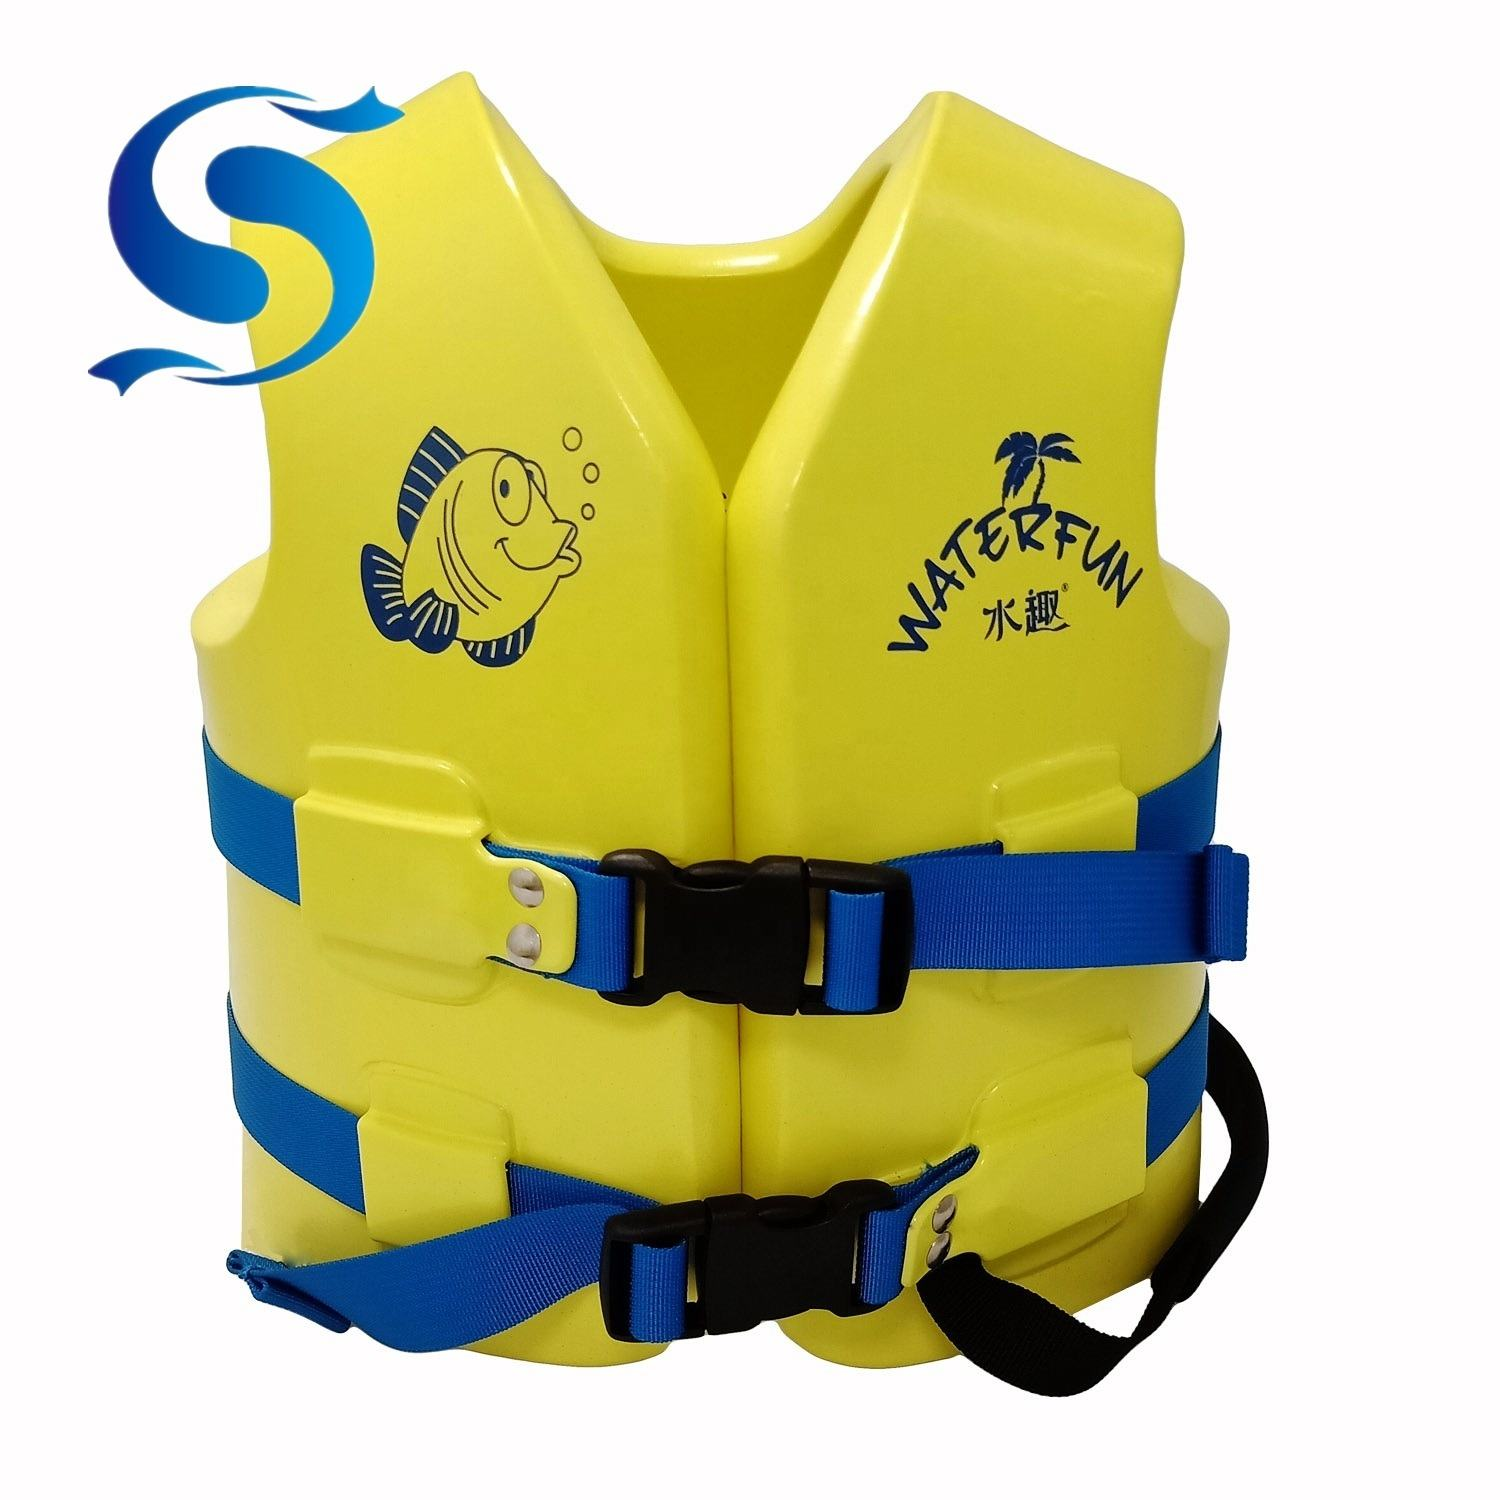 Waterfun Water Park Safety Products Soft Life Vest for Children and Adult